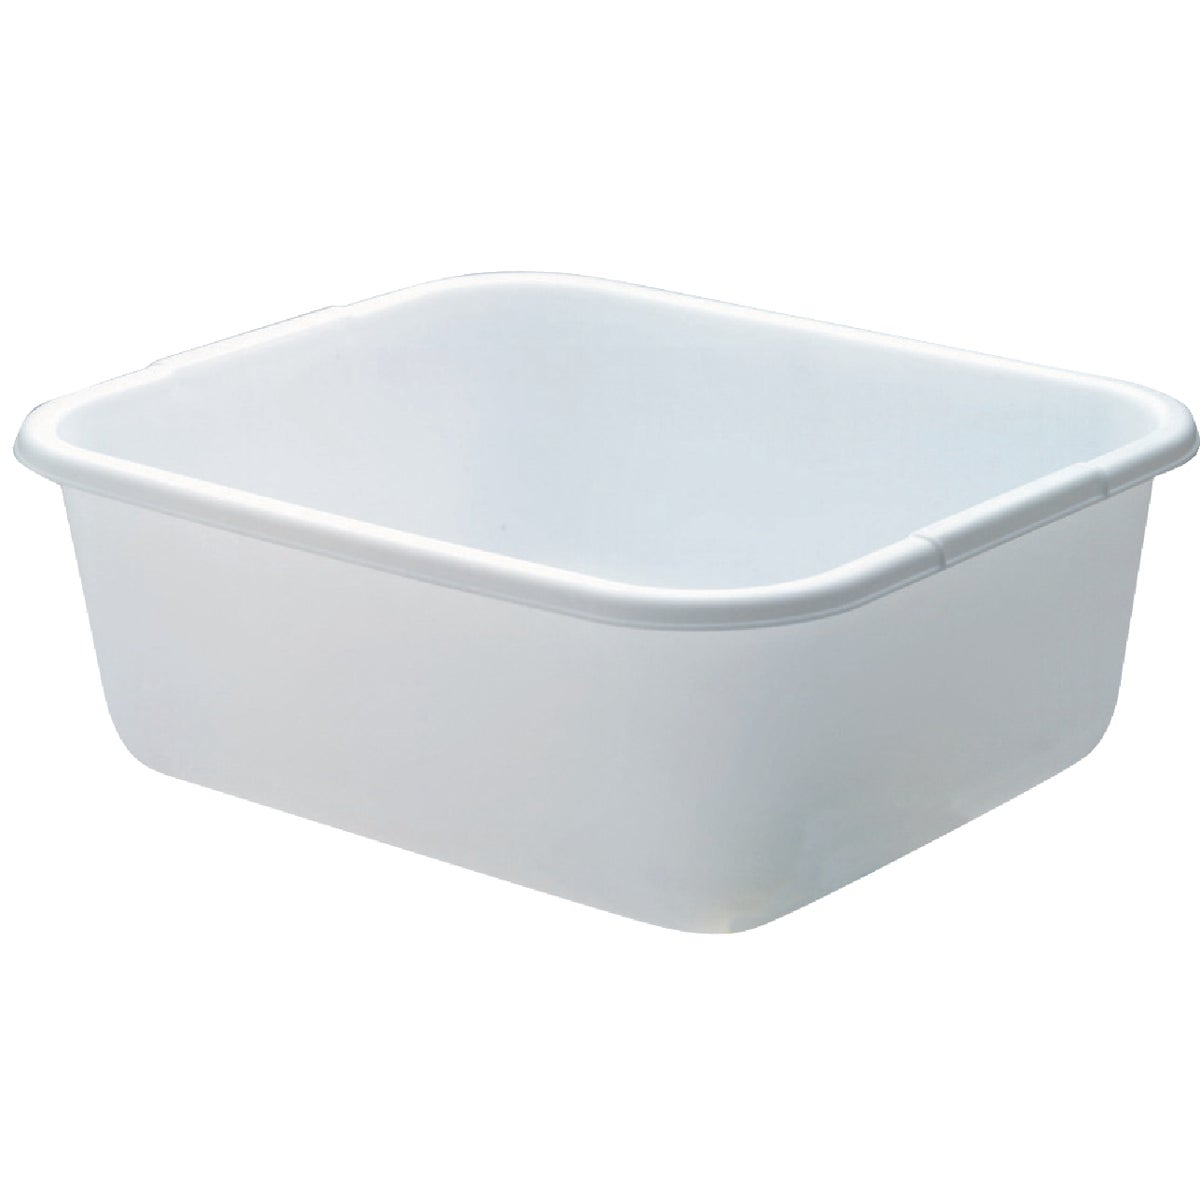 WHITE DISHPAN - 2951-AR-WHT by Rubbermaid Home